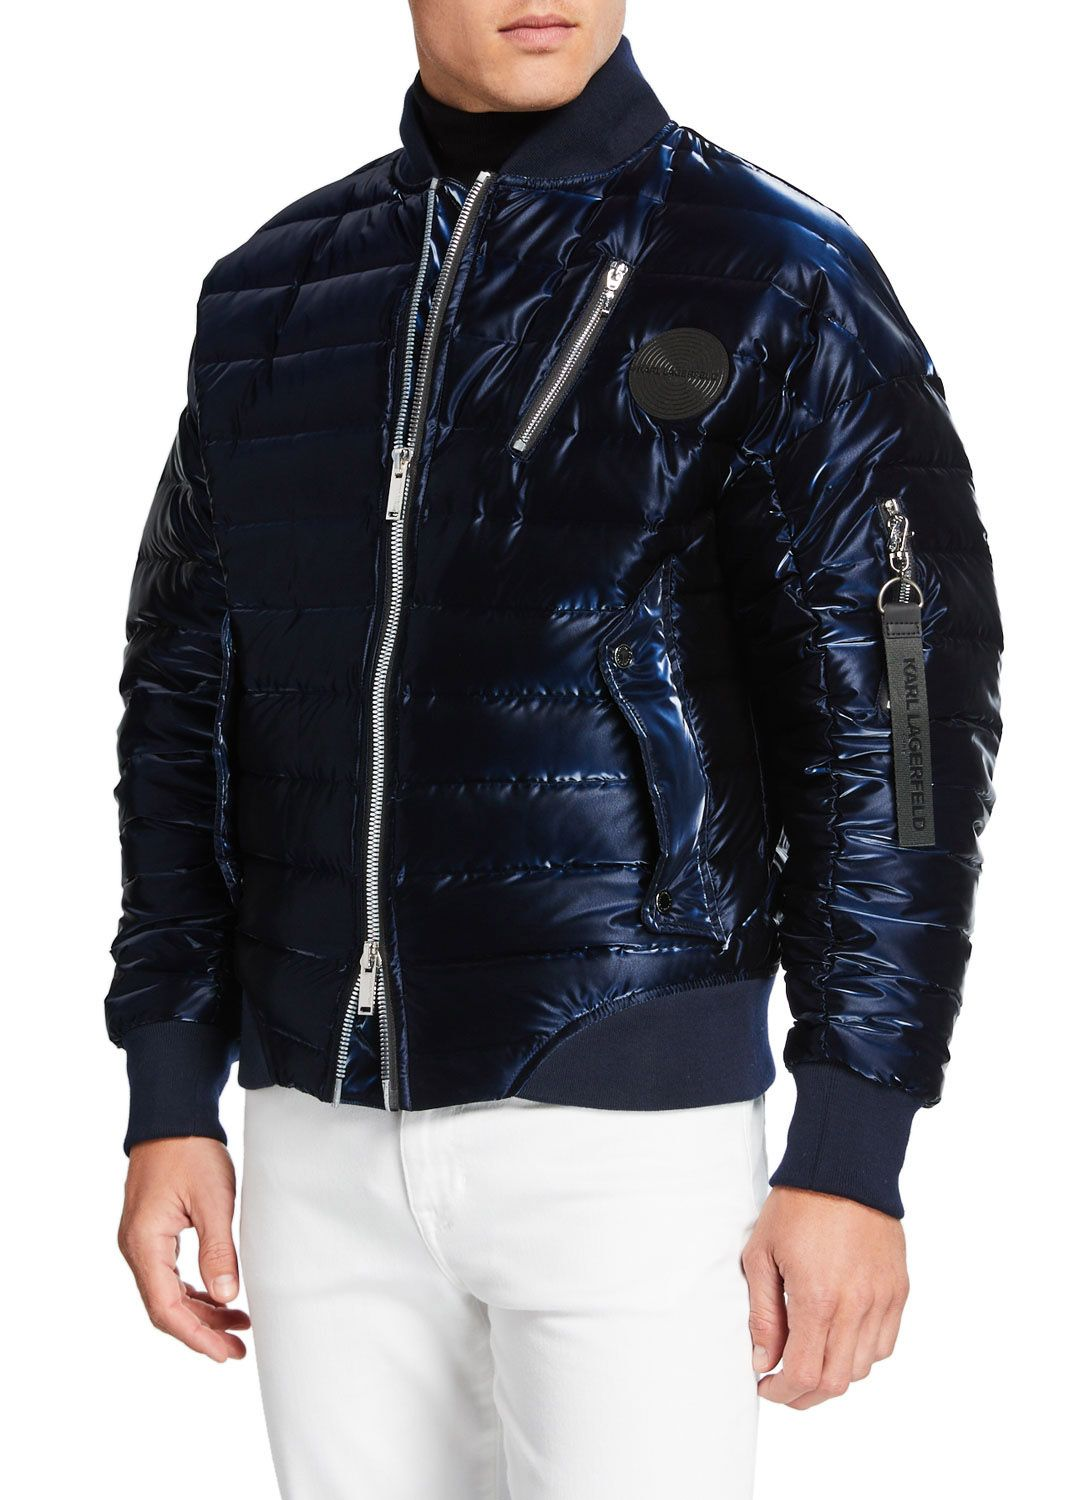 Karl Lagerfeld Men's Oversized Liquid Puffer Bomber Jacket